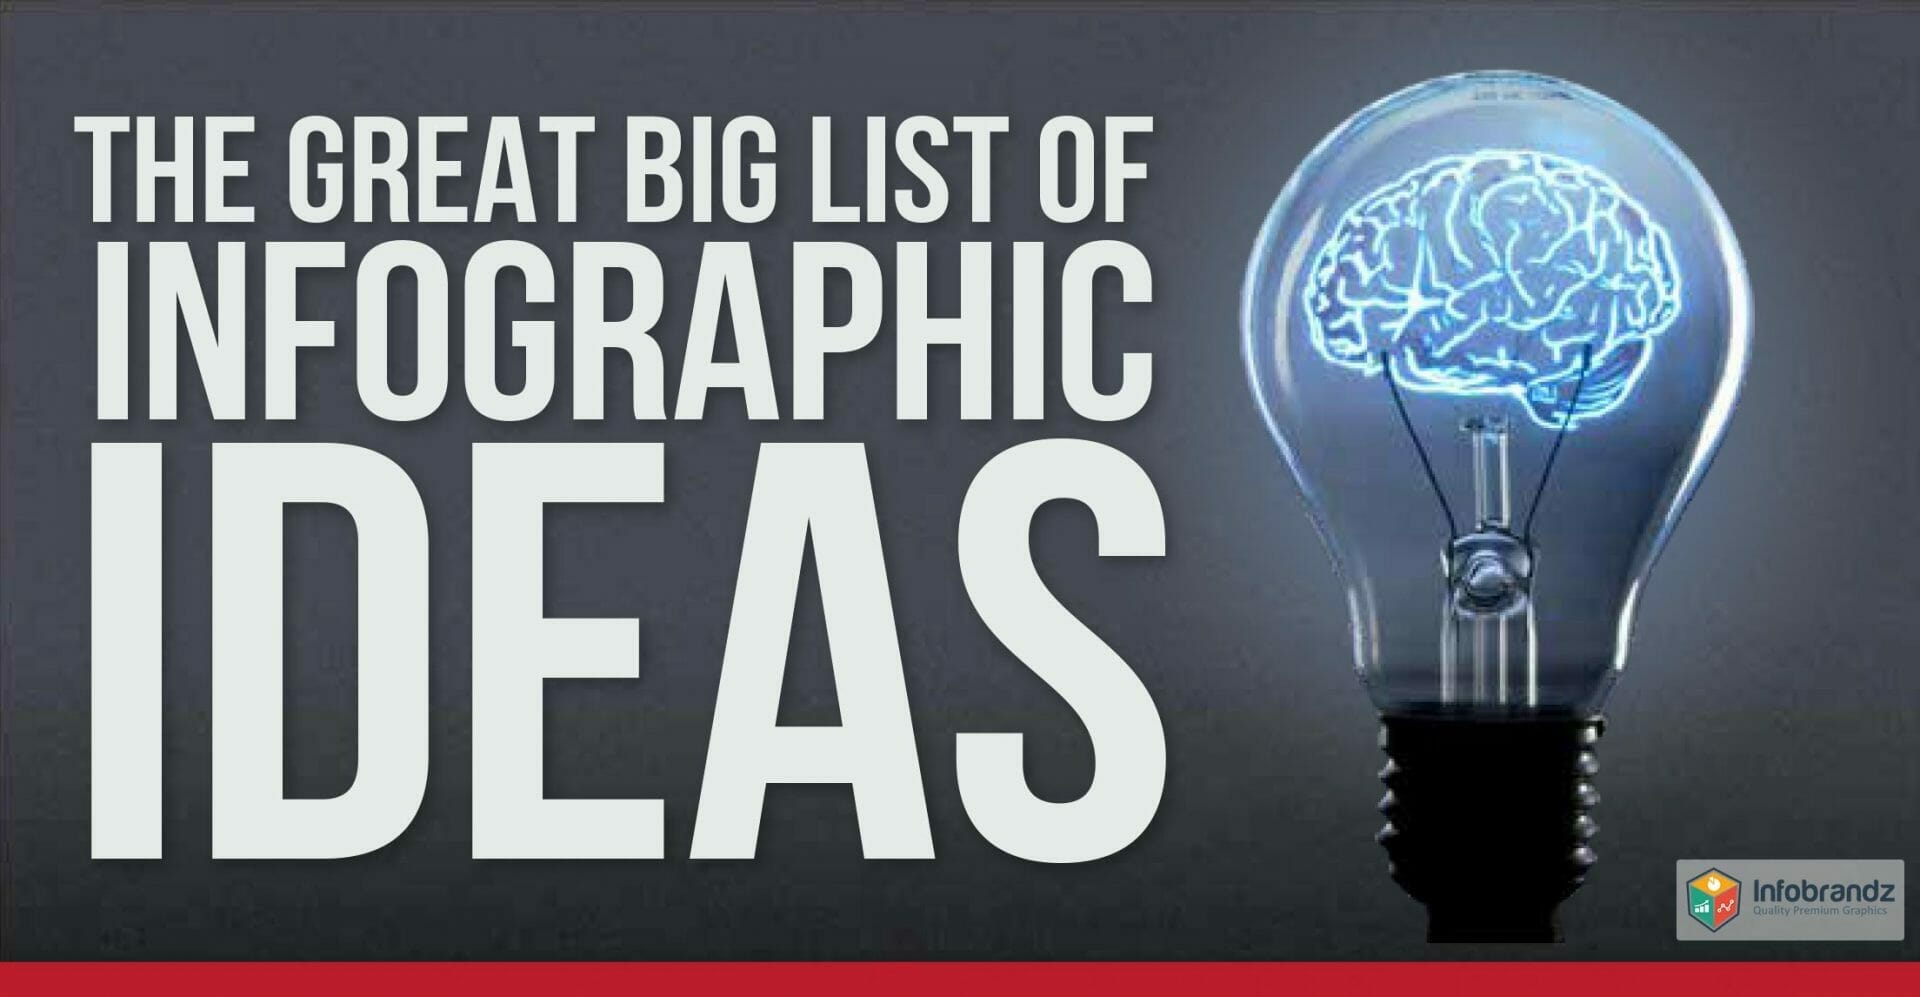 The Great Big List of Infographic Ideas